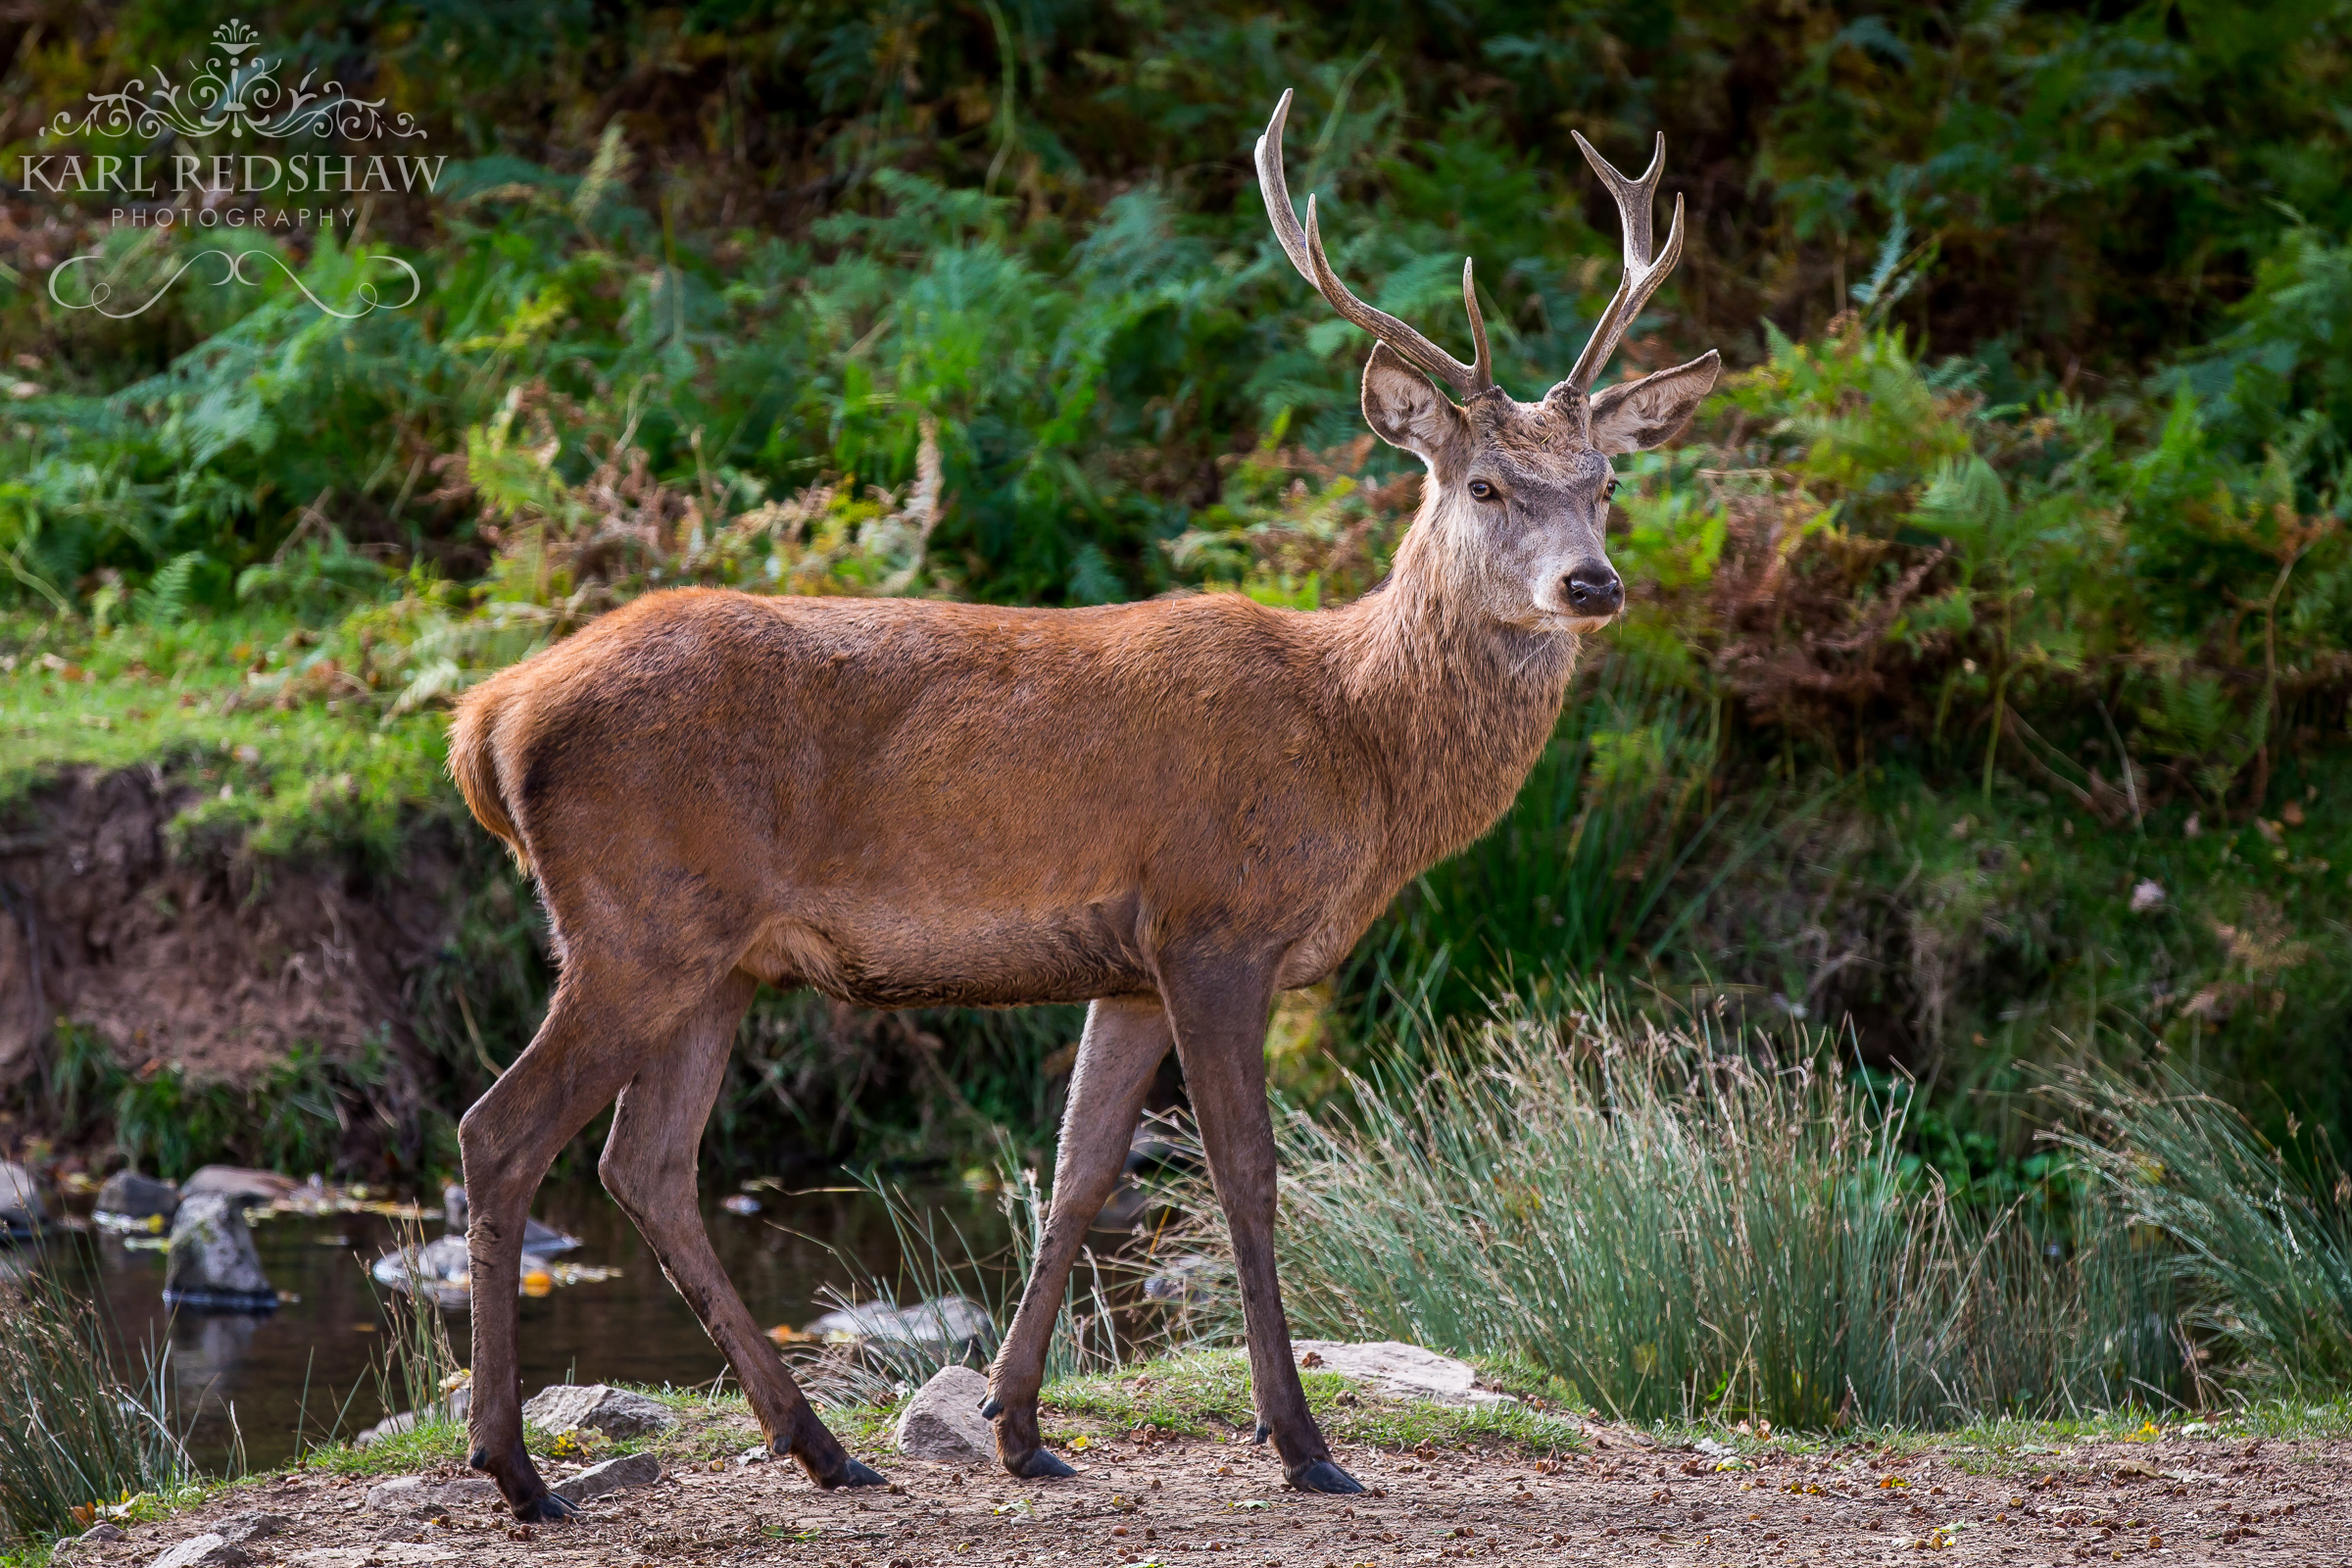 Red Deer Stag, Lucky moment captured just 8 ft away